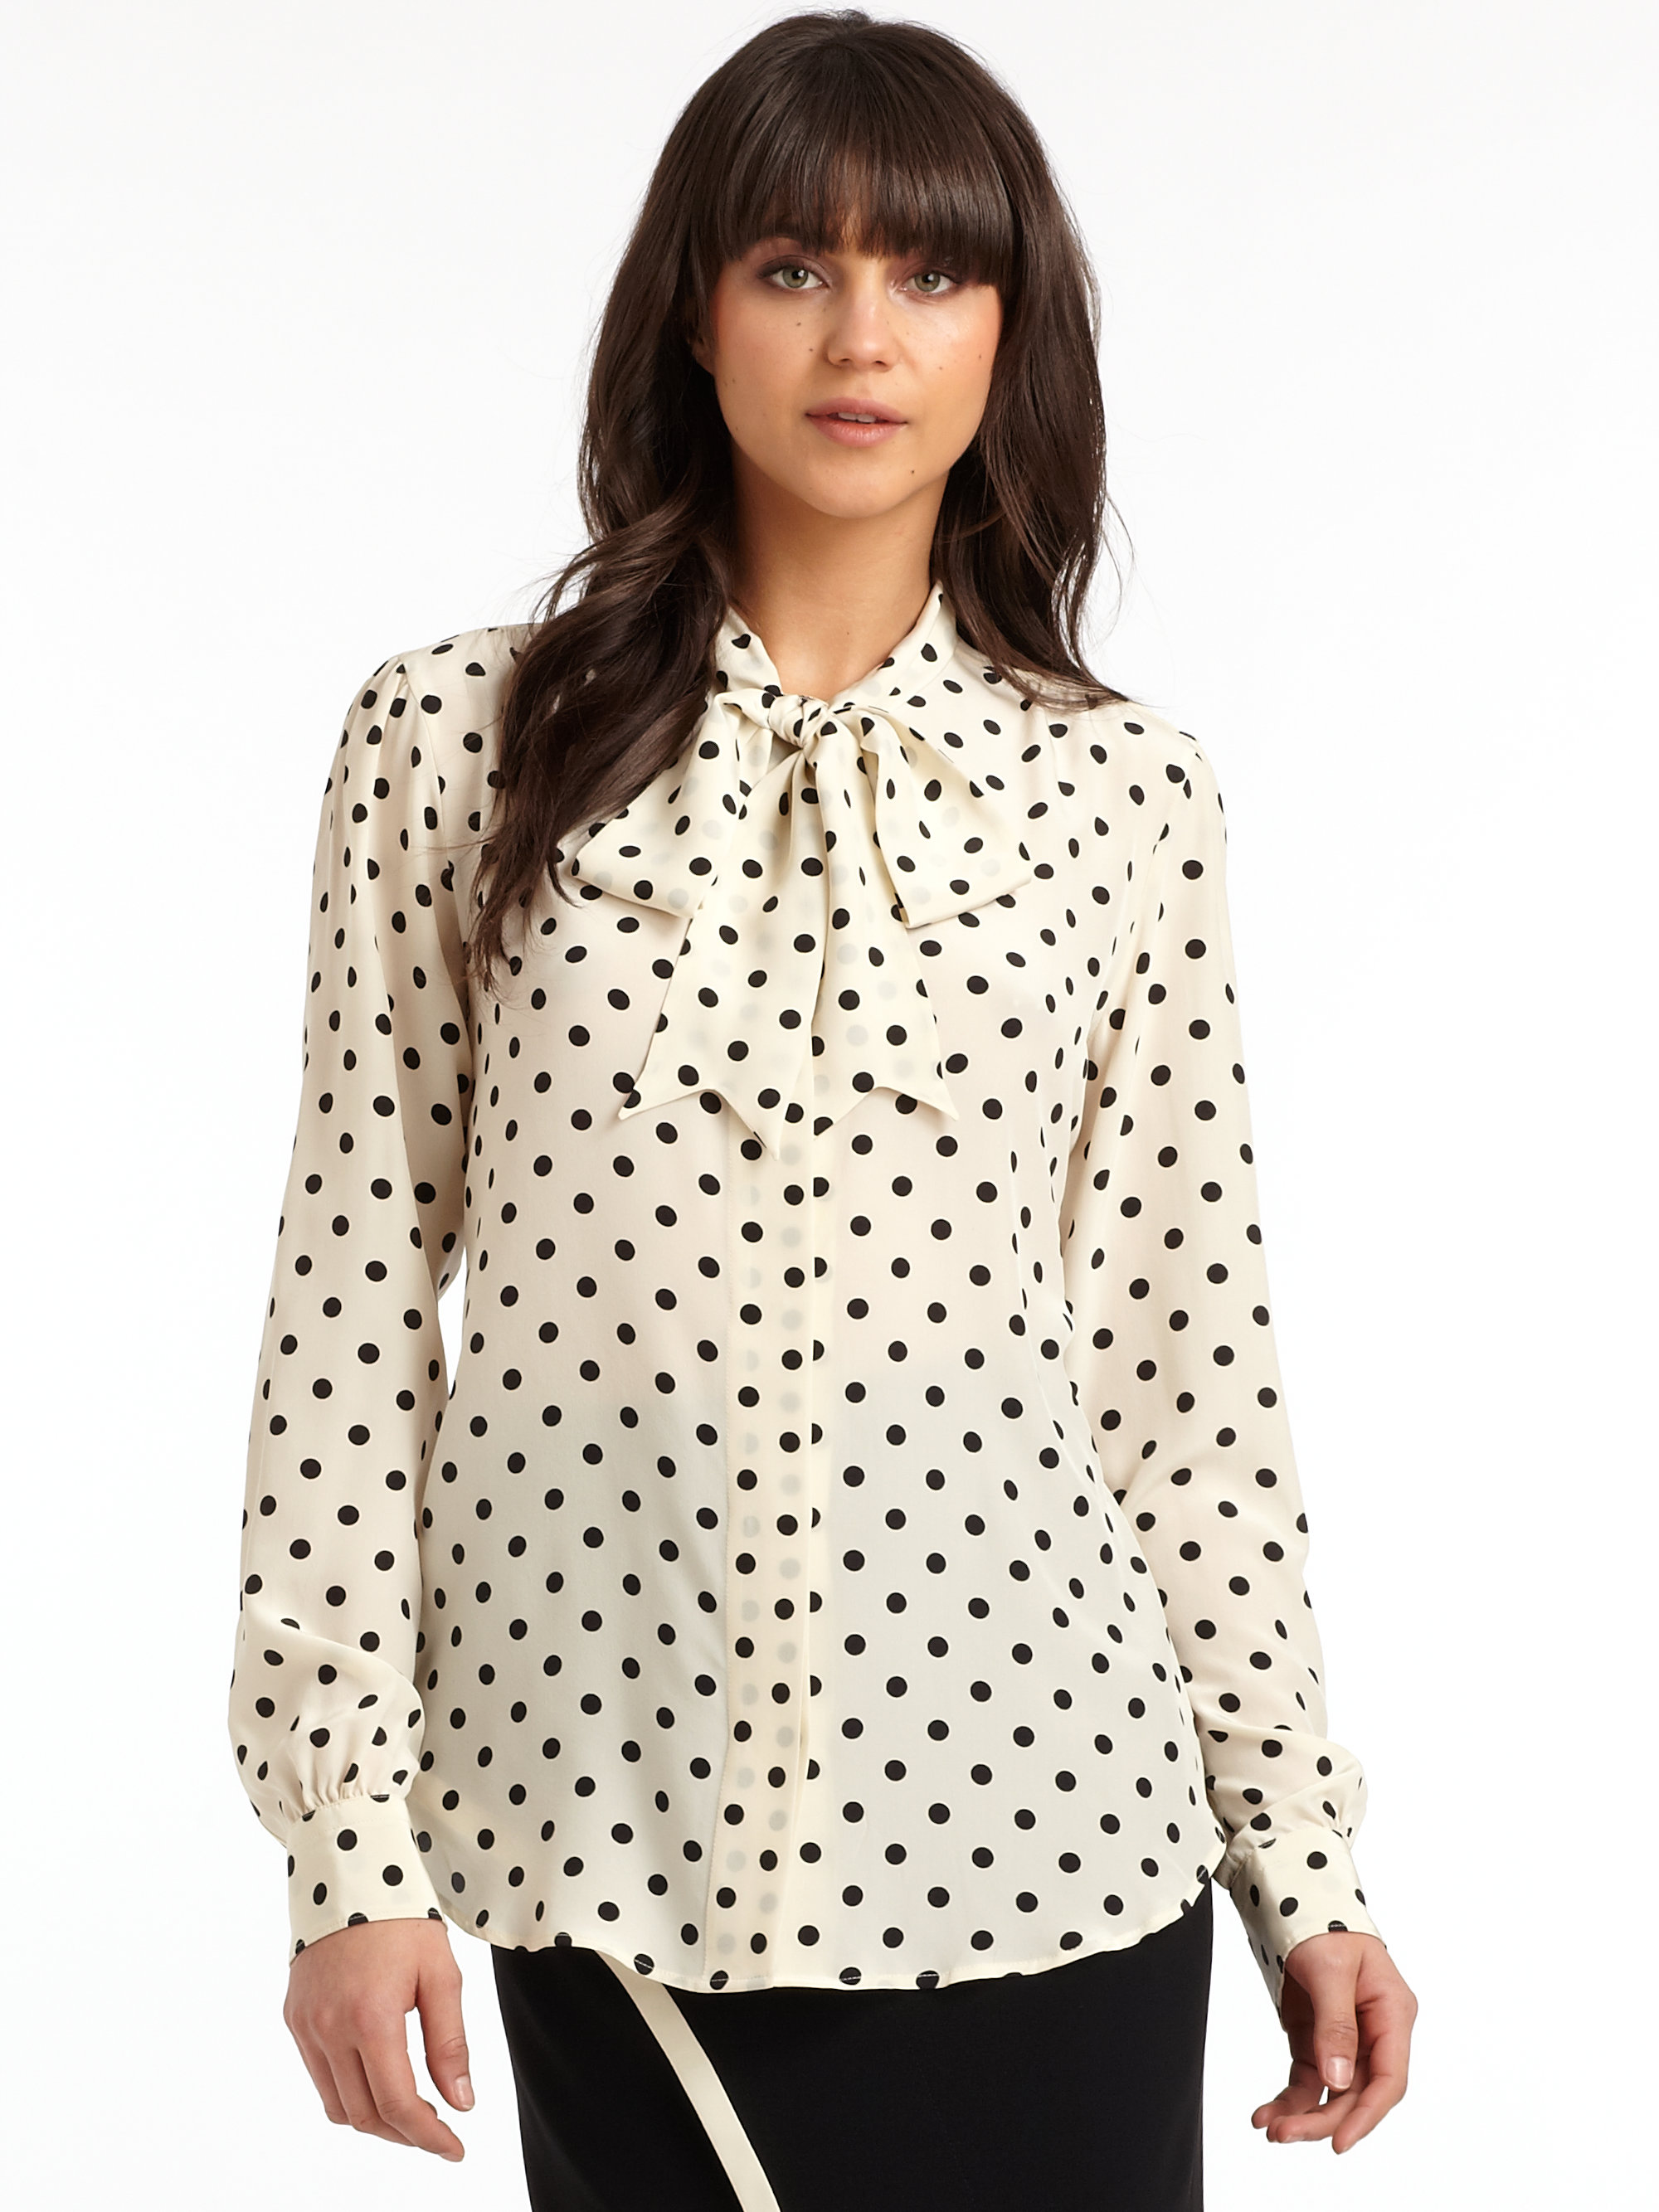 Women's Polka Dot Tops and Blouses Polka dots are timeless, and this circular pattern has been embellishing tops for decades. Available in a range of colors, brands, and styles, polka dot tops instantly add pizzazz to any woman's look.